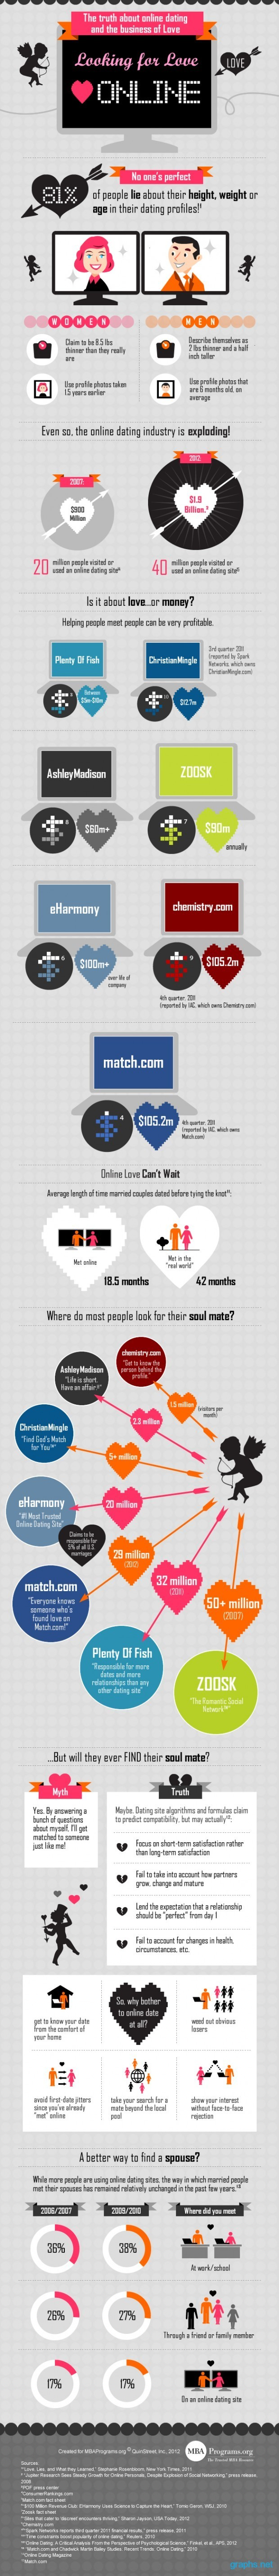 Truth about online dating